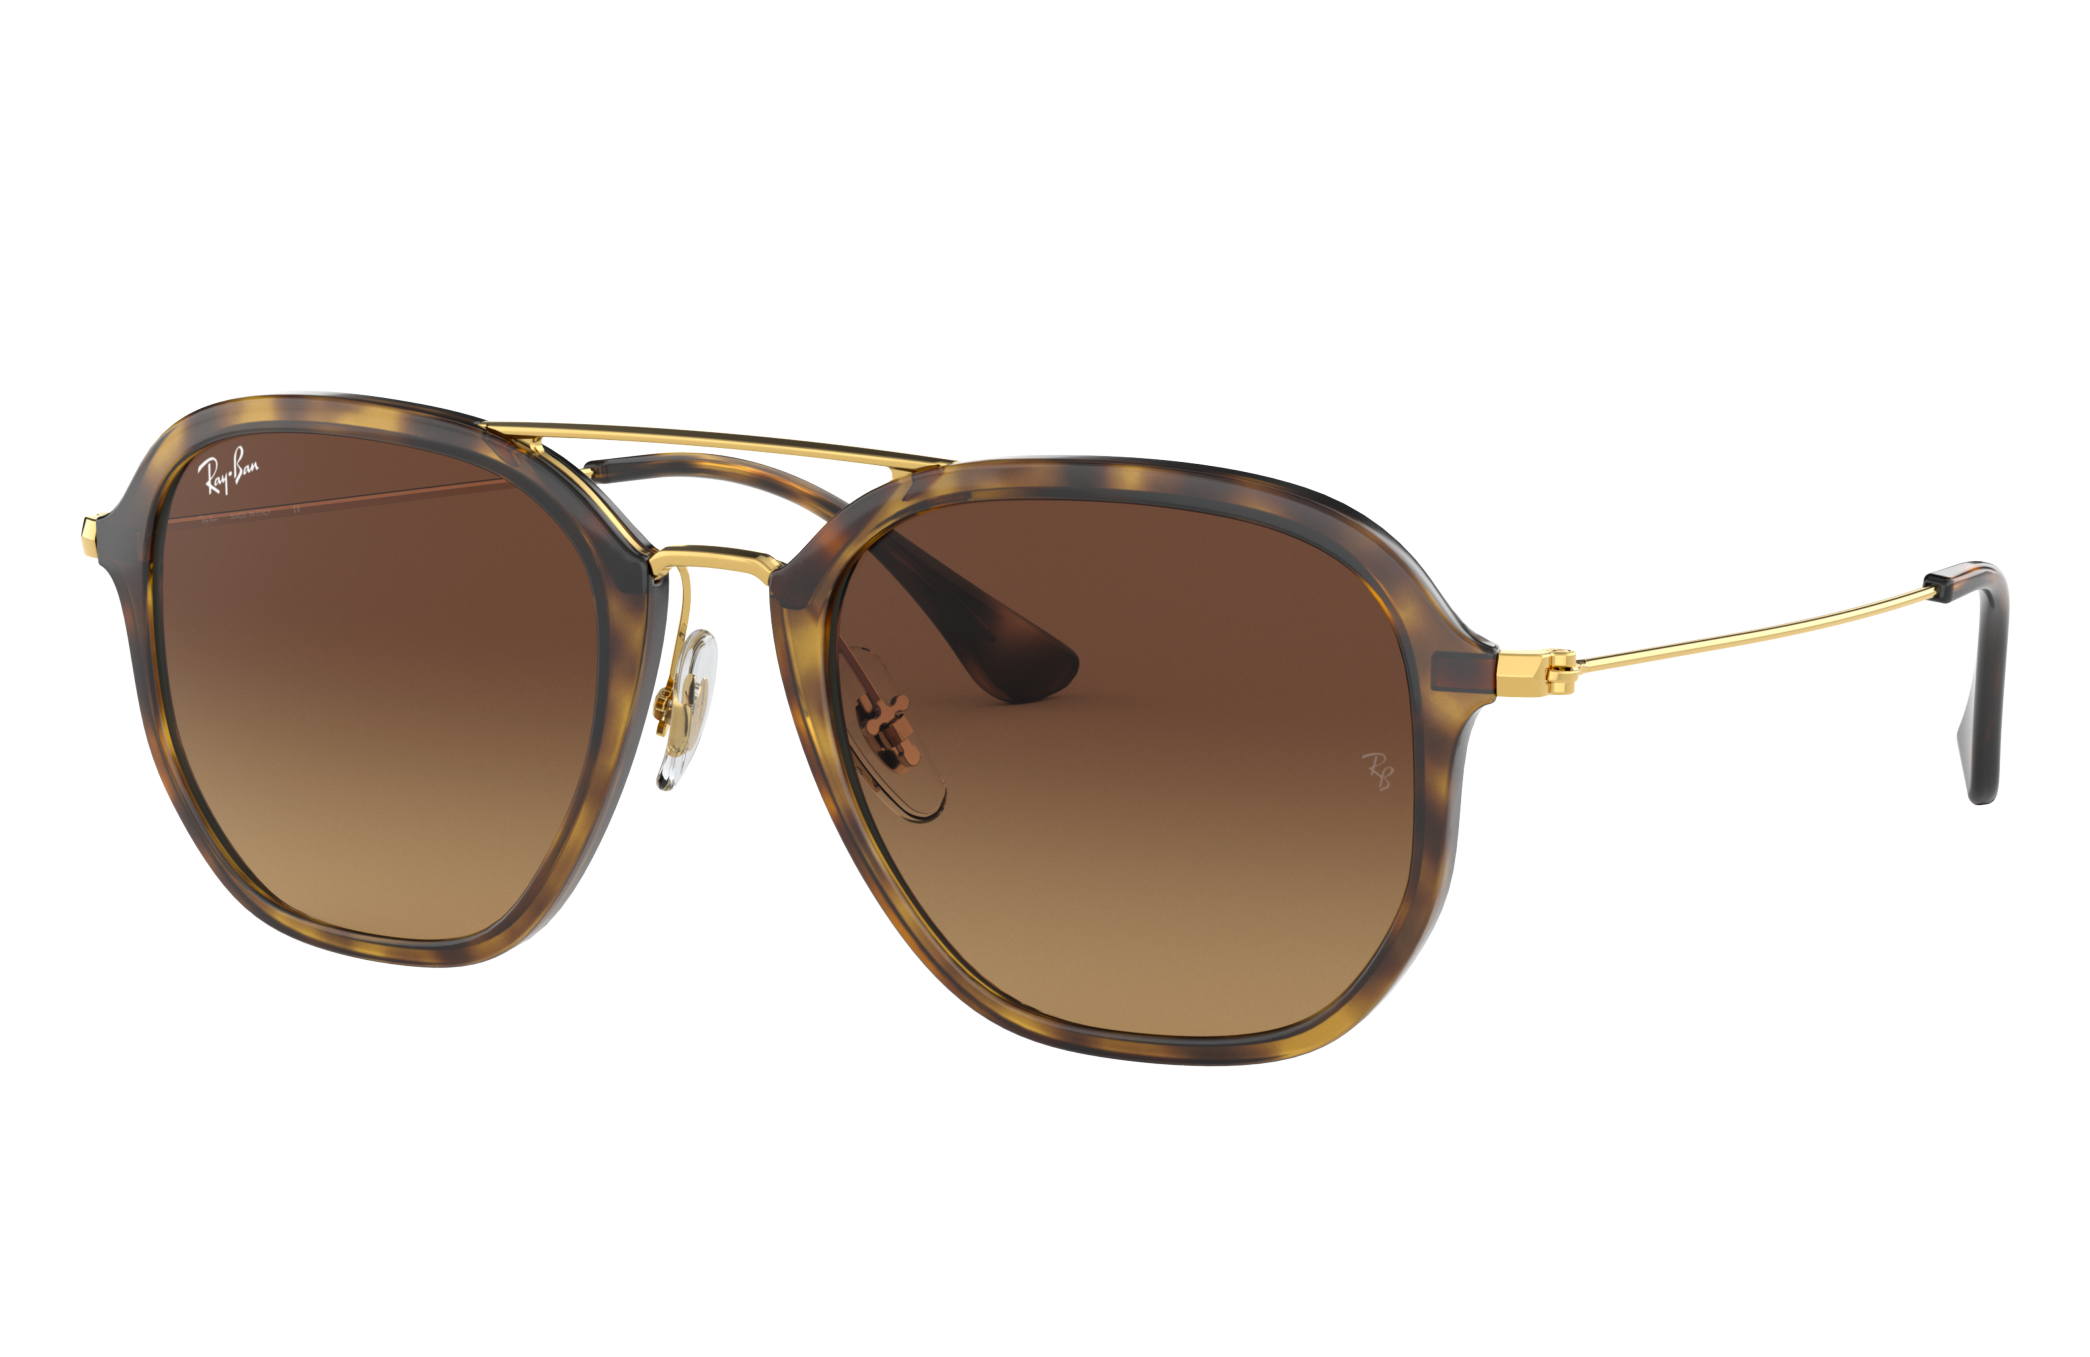 Ray-Ban Rb4273 Gold, Brown Lenses - RB4273